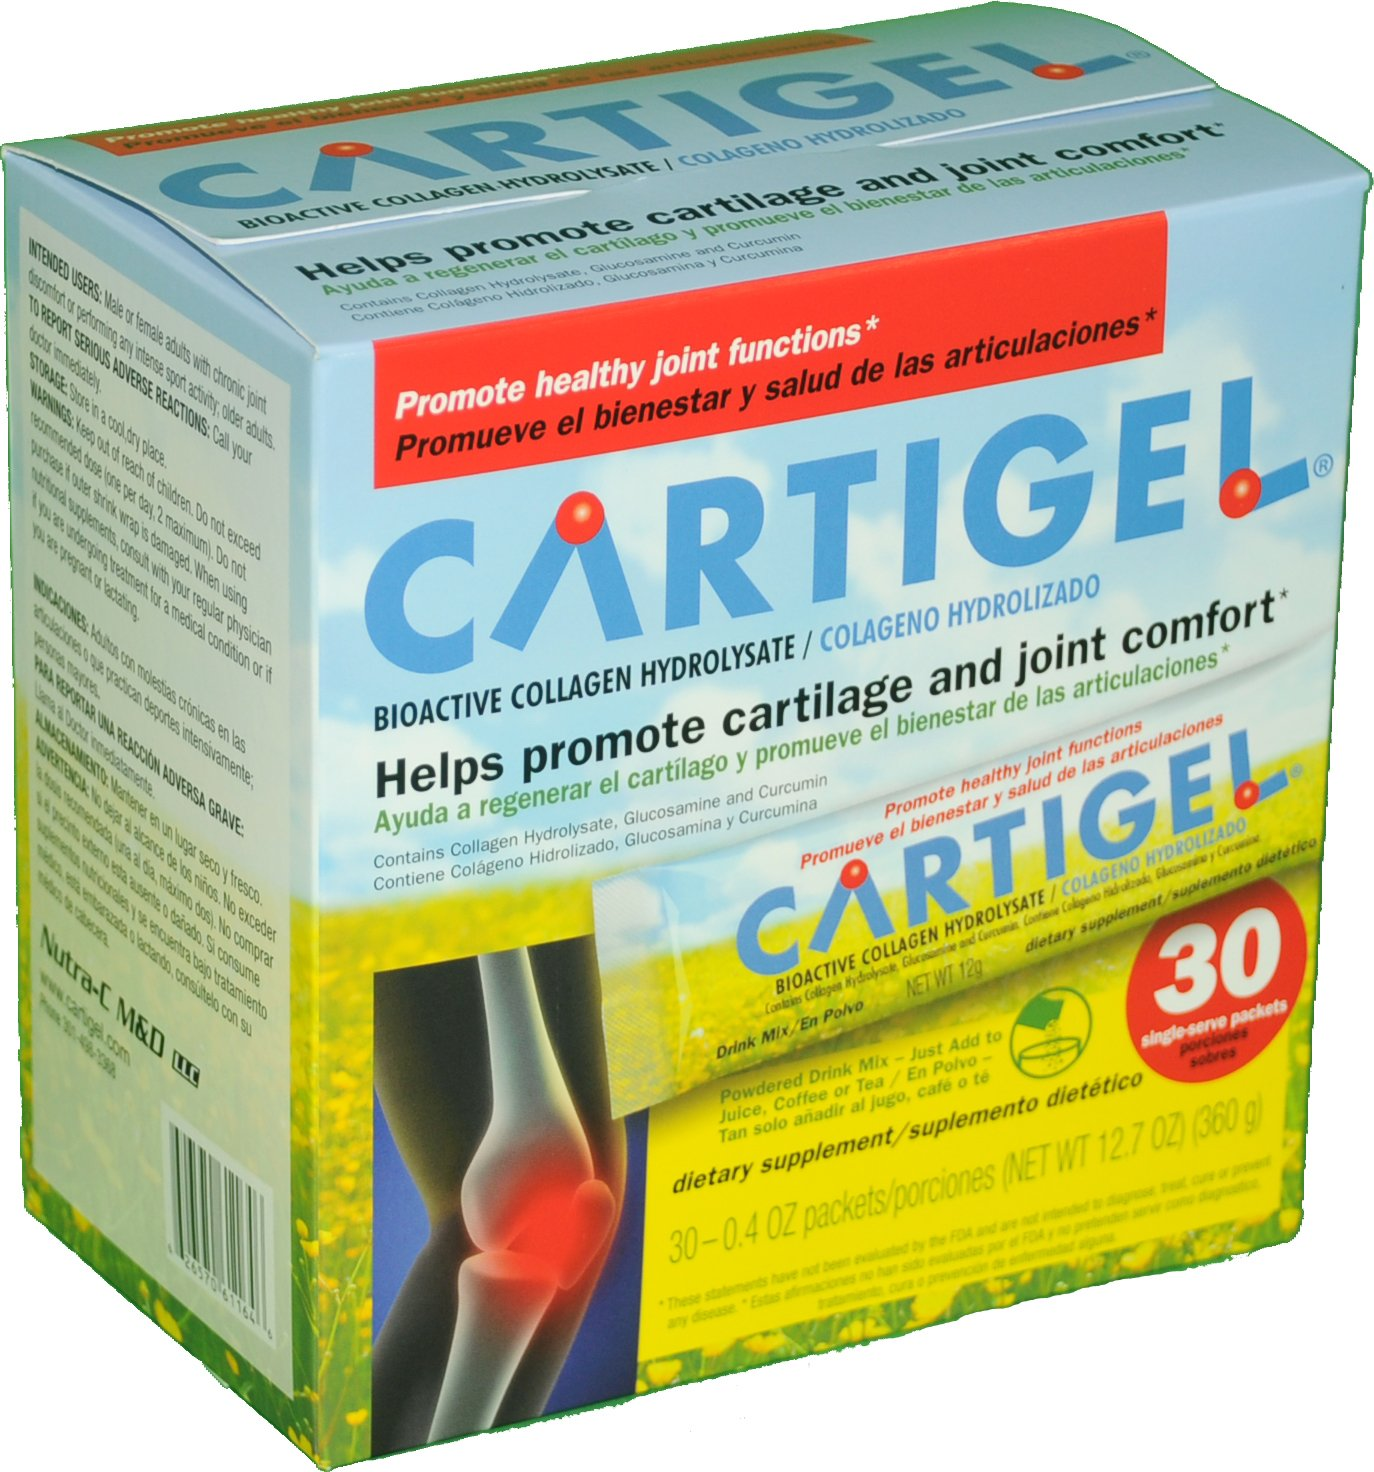 Amazon.com: Cartigel : the ultimate Joint pain releif formula: Health & Personal Care